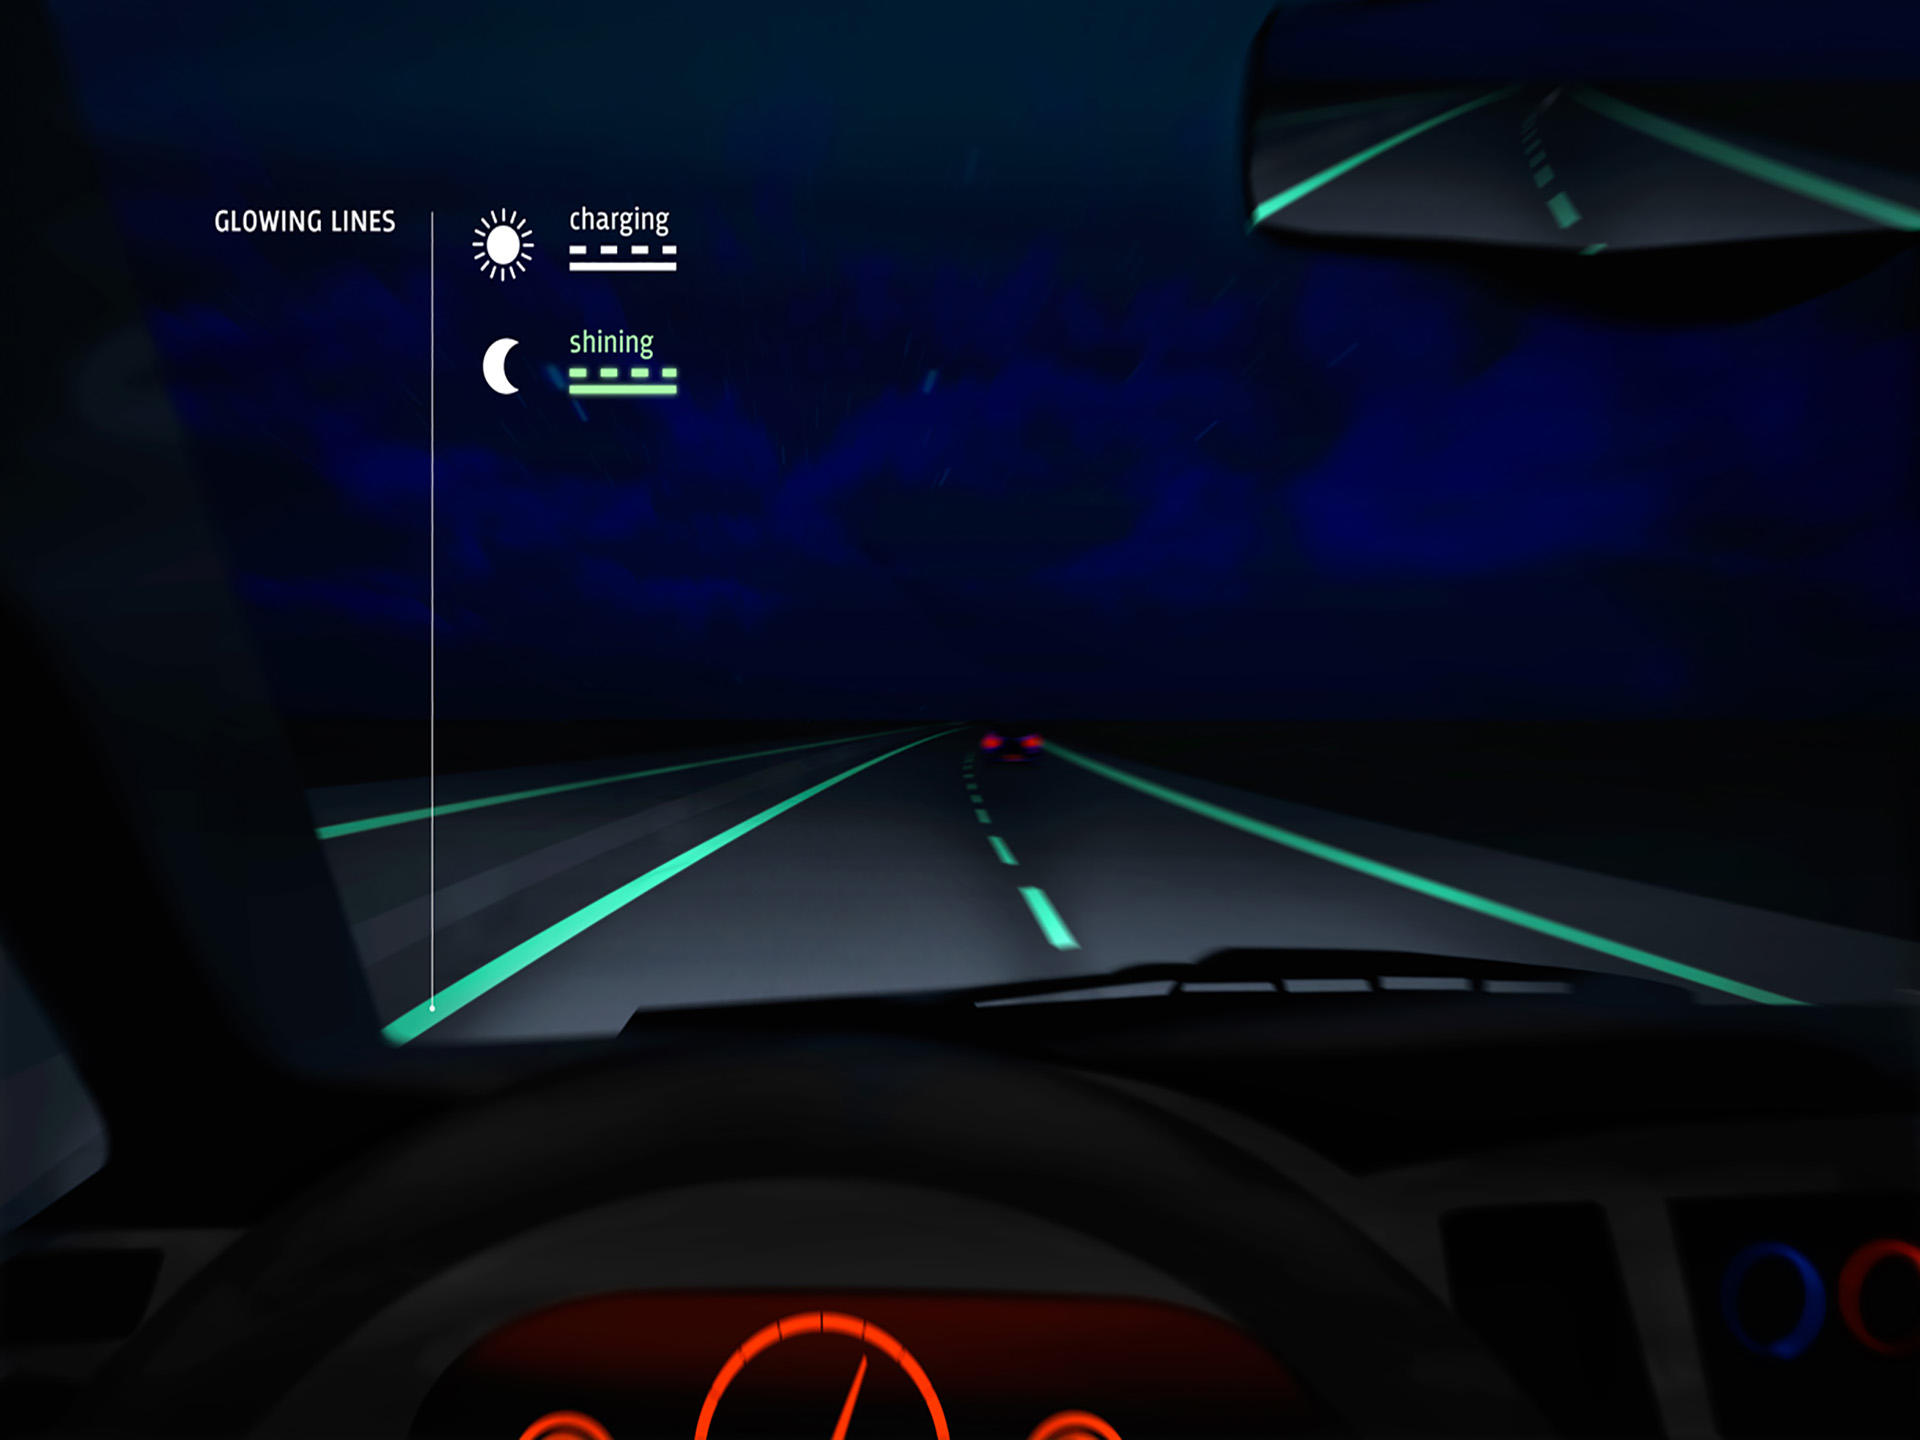 Glowing road markings light the way